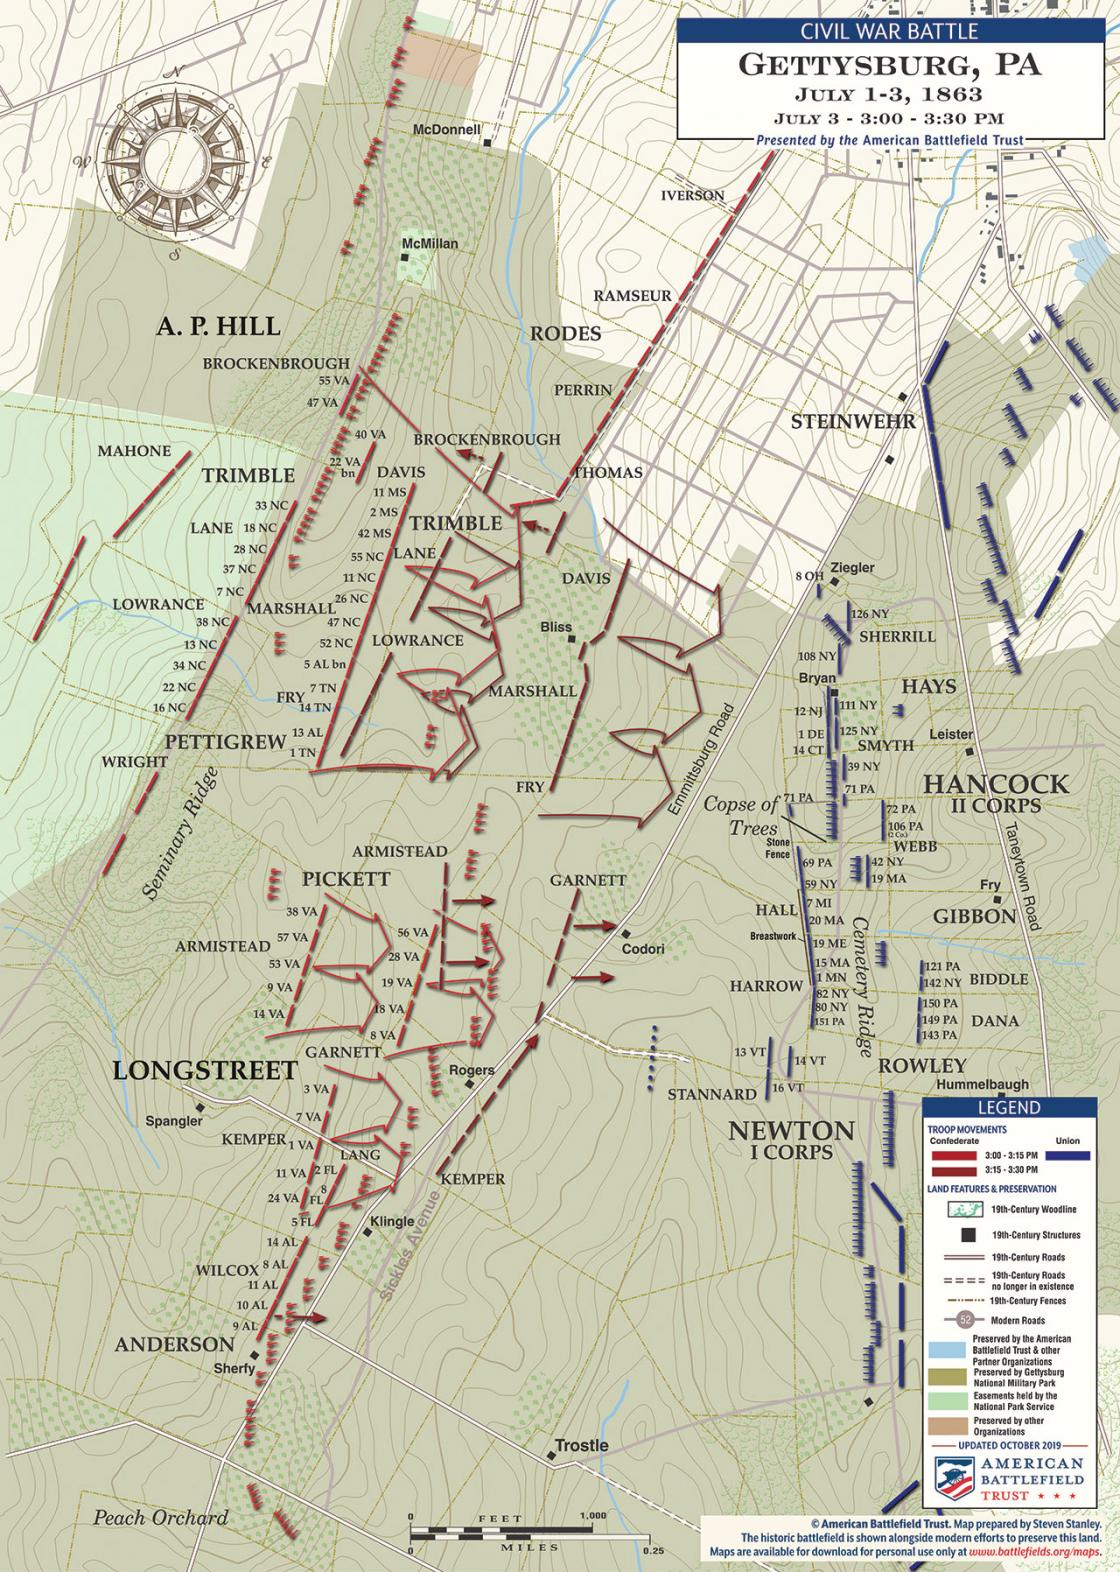 Gettysburg - Pickett's Charge, July 3, 1863 - 3:00 - 3:30PM (October 2019)